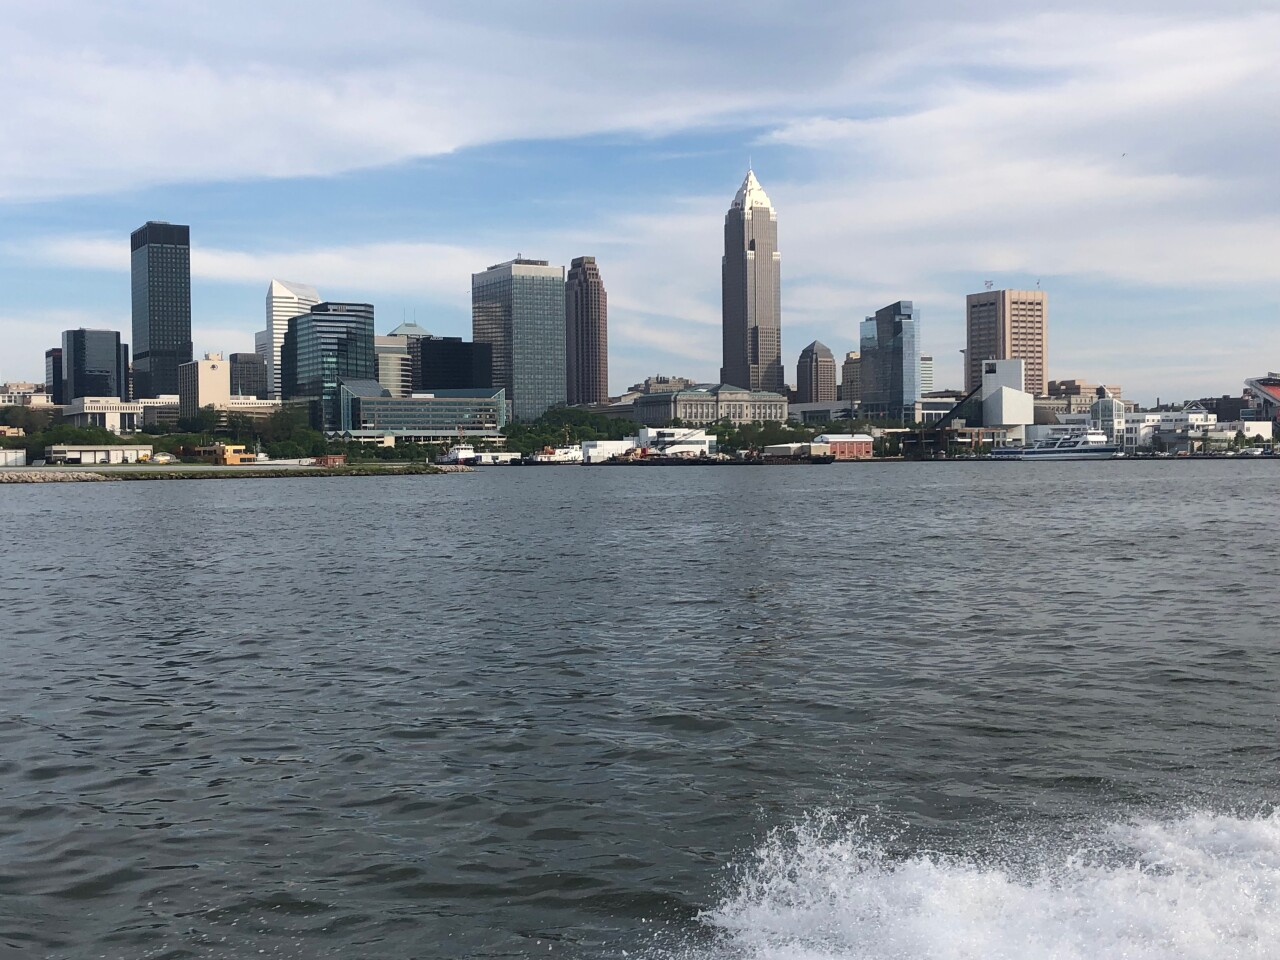 Cleveland skyline from Lake Erie